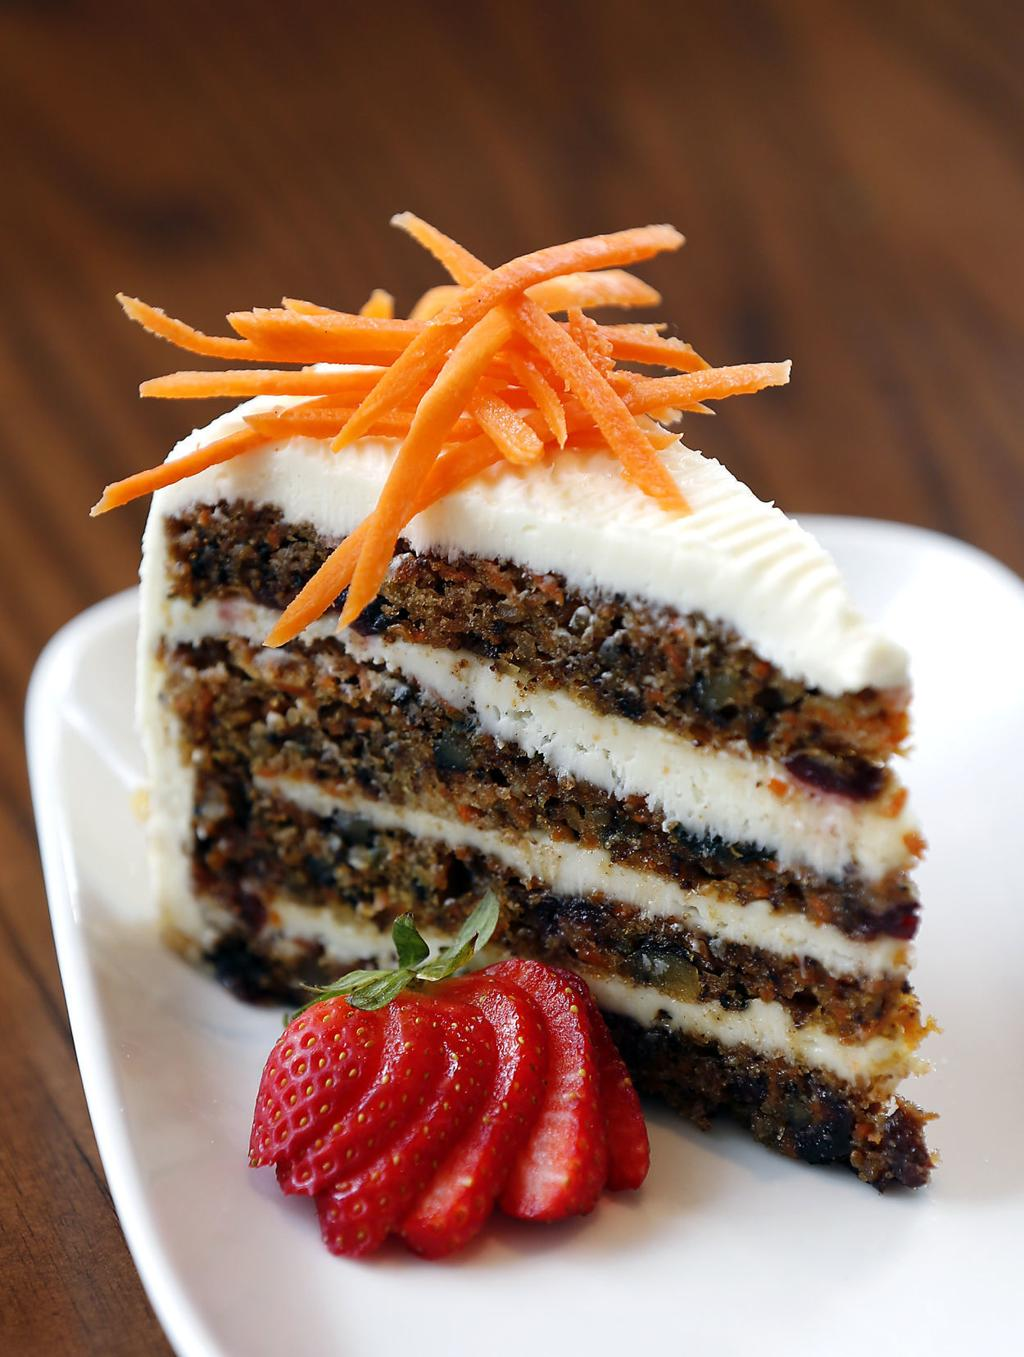 Restaurant review: The Daily Kitchen & Bar brings winning